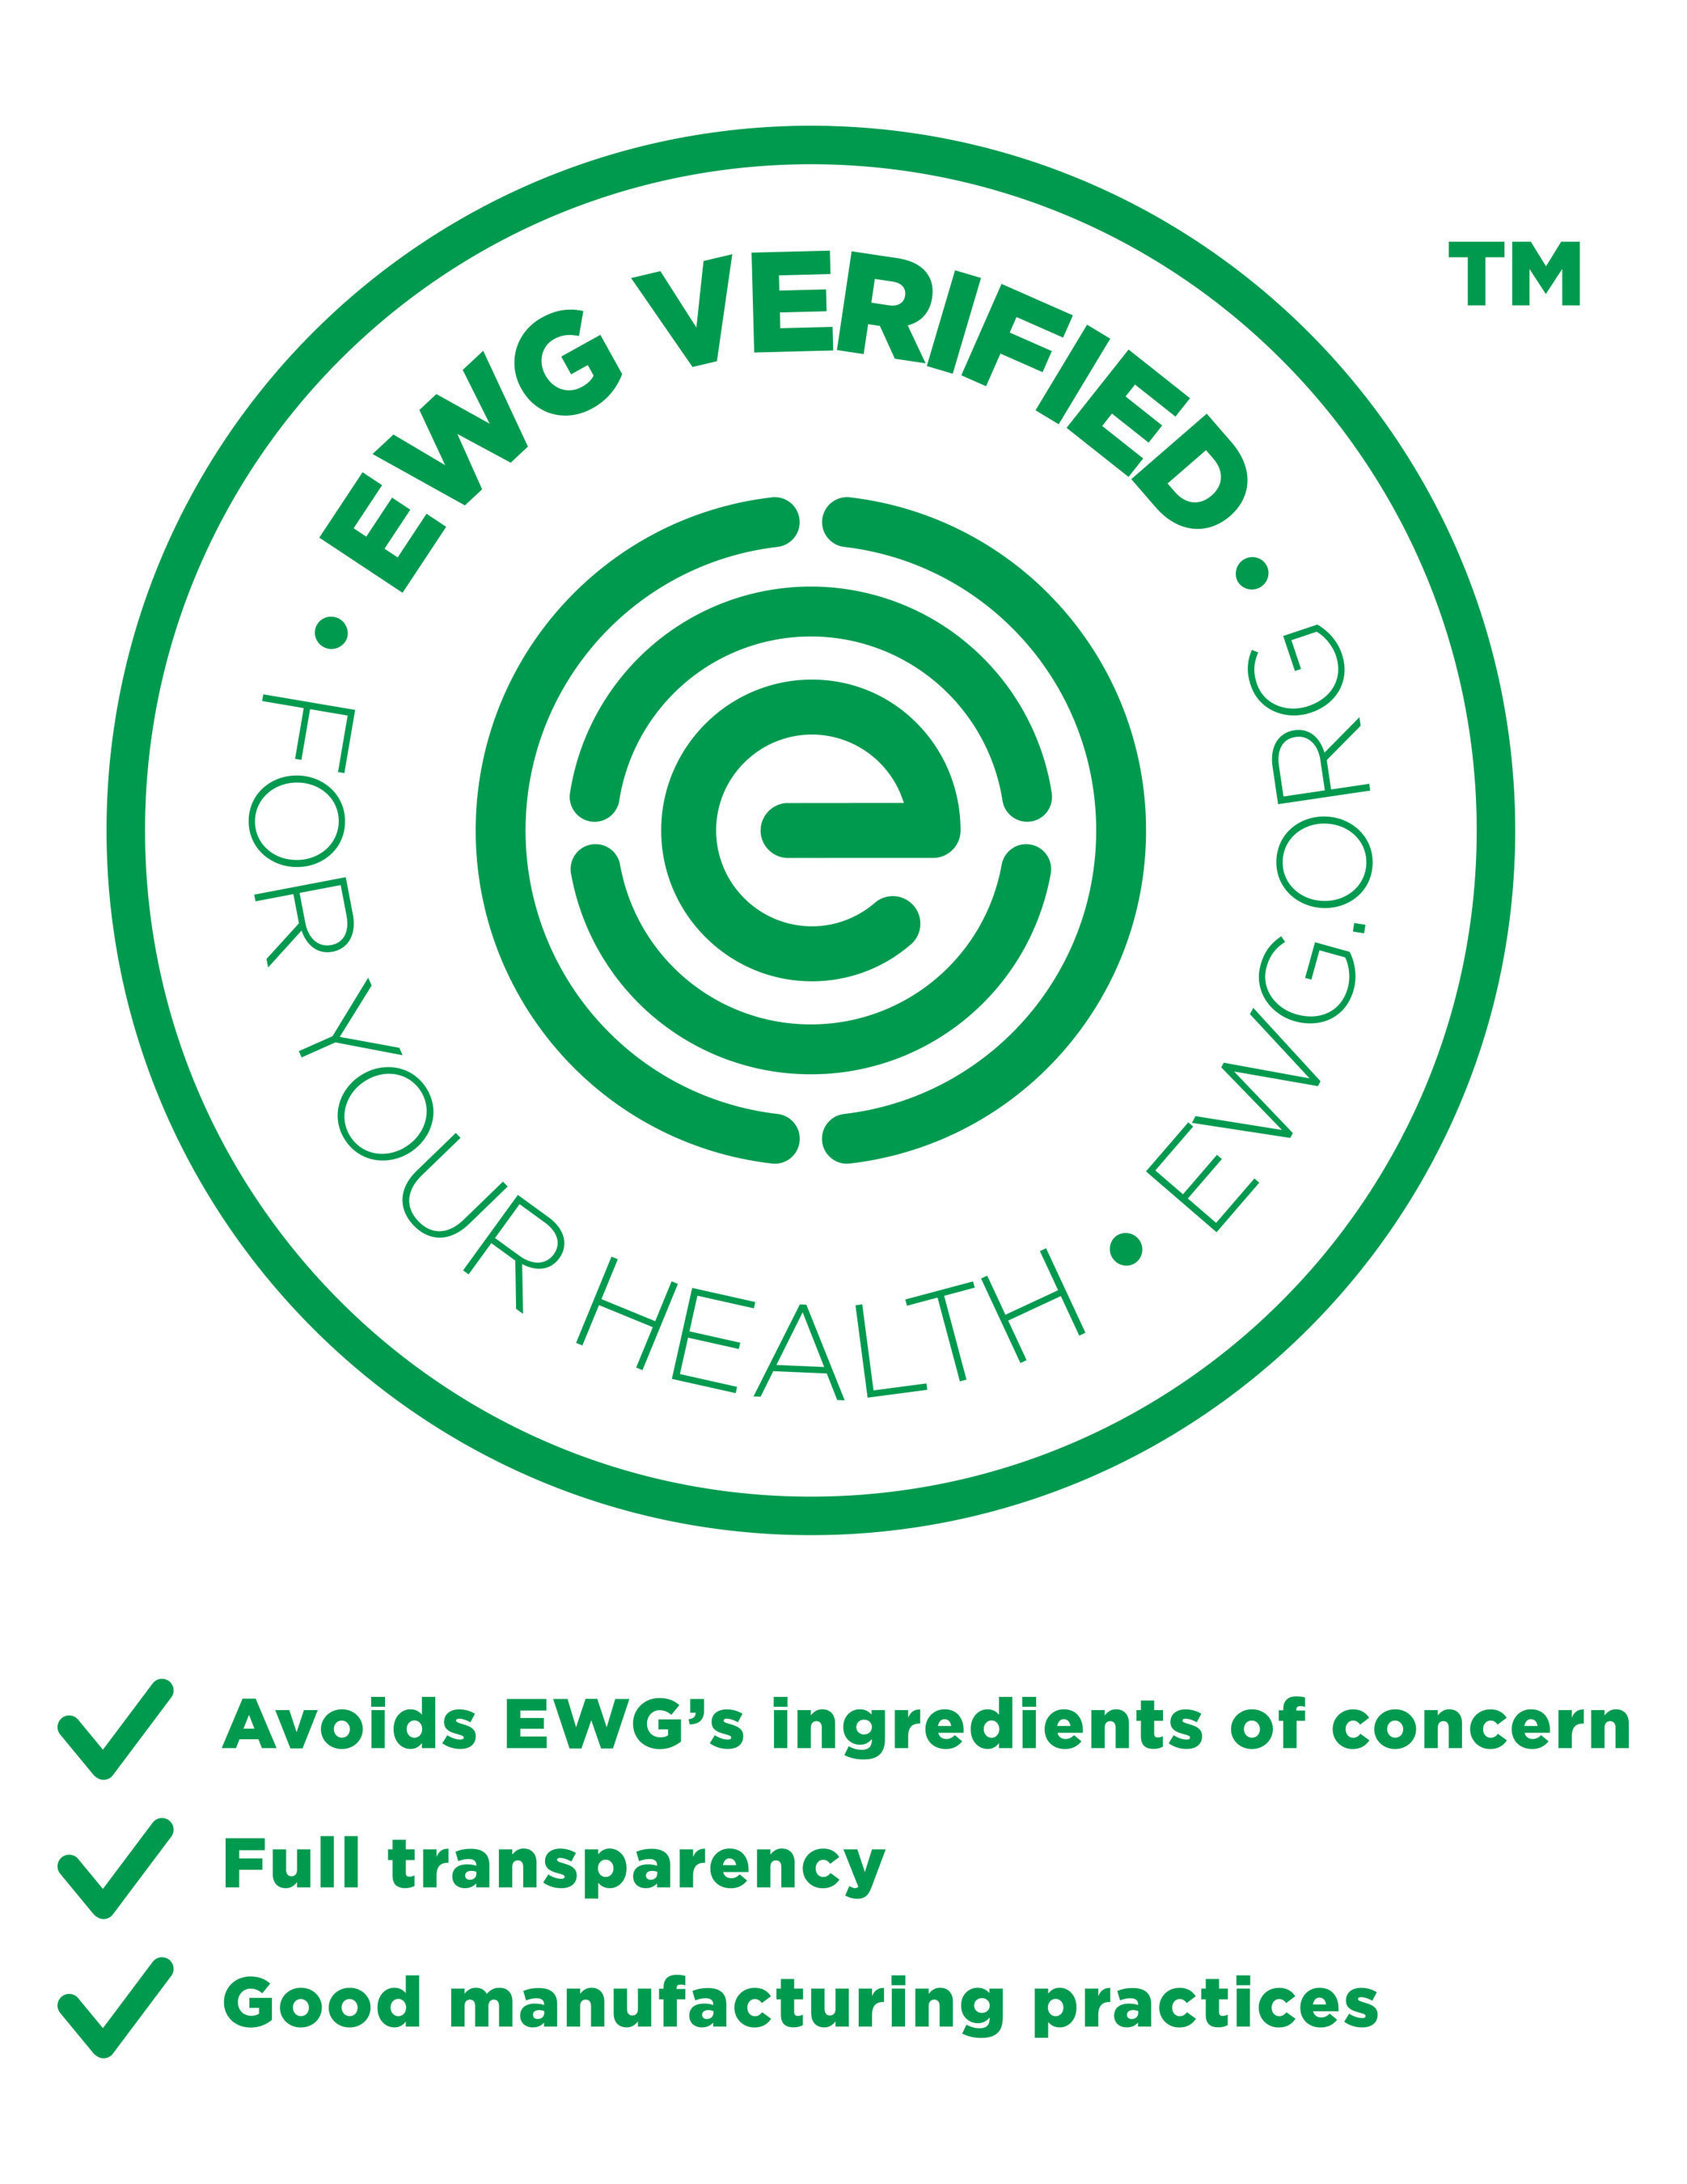 """MyChelle was recently named a Founding Member of EWG VERIFIED(TM), a new verification program to help consumers quickly and easily identify personal care products, including cosmetics, that meet the organization's strictest standards. The EWG VERIFIED(TM) mark elevates the EWG's Skin Deep(R) rating system by requiring products to meet additional rigorous criteria, including avoiding EWG's """"unacceptable"""" ingredients, labeling that fully discloses its ingredients, and following good manufacturing practices."""